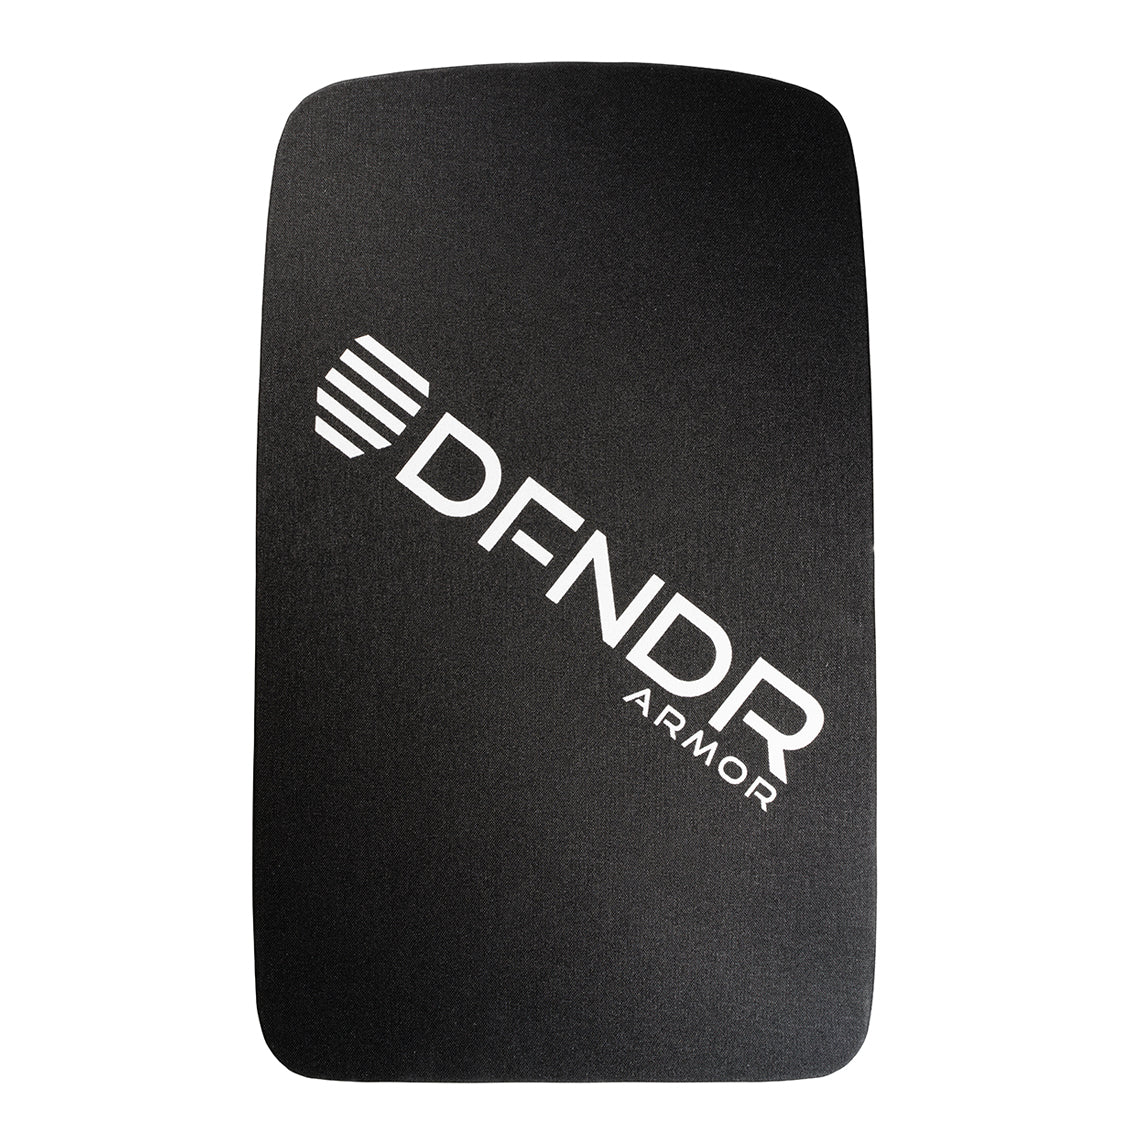 DFNDR Armor LEVEL III+ RIFLE RATED BACKPACK SHIELD